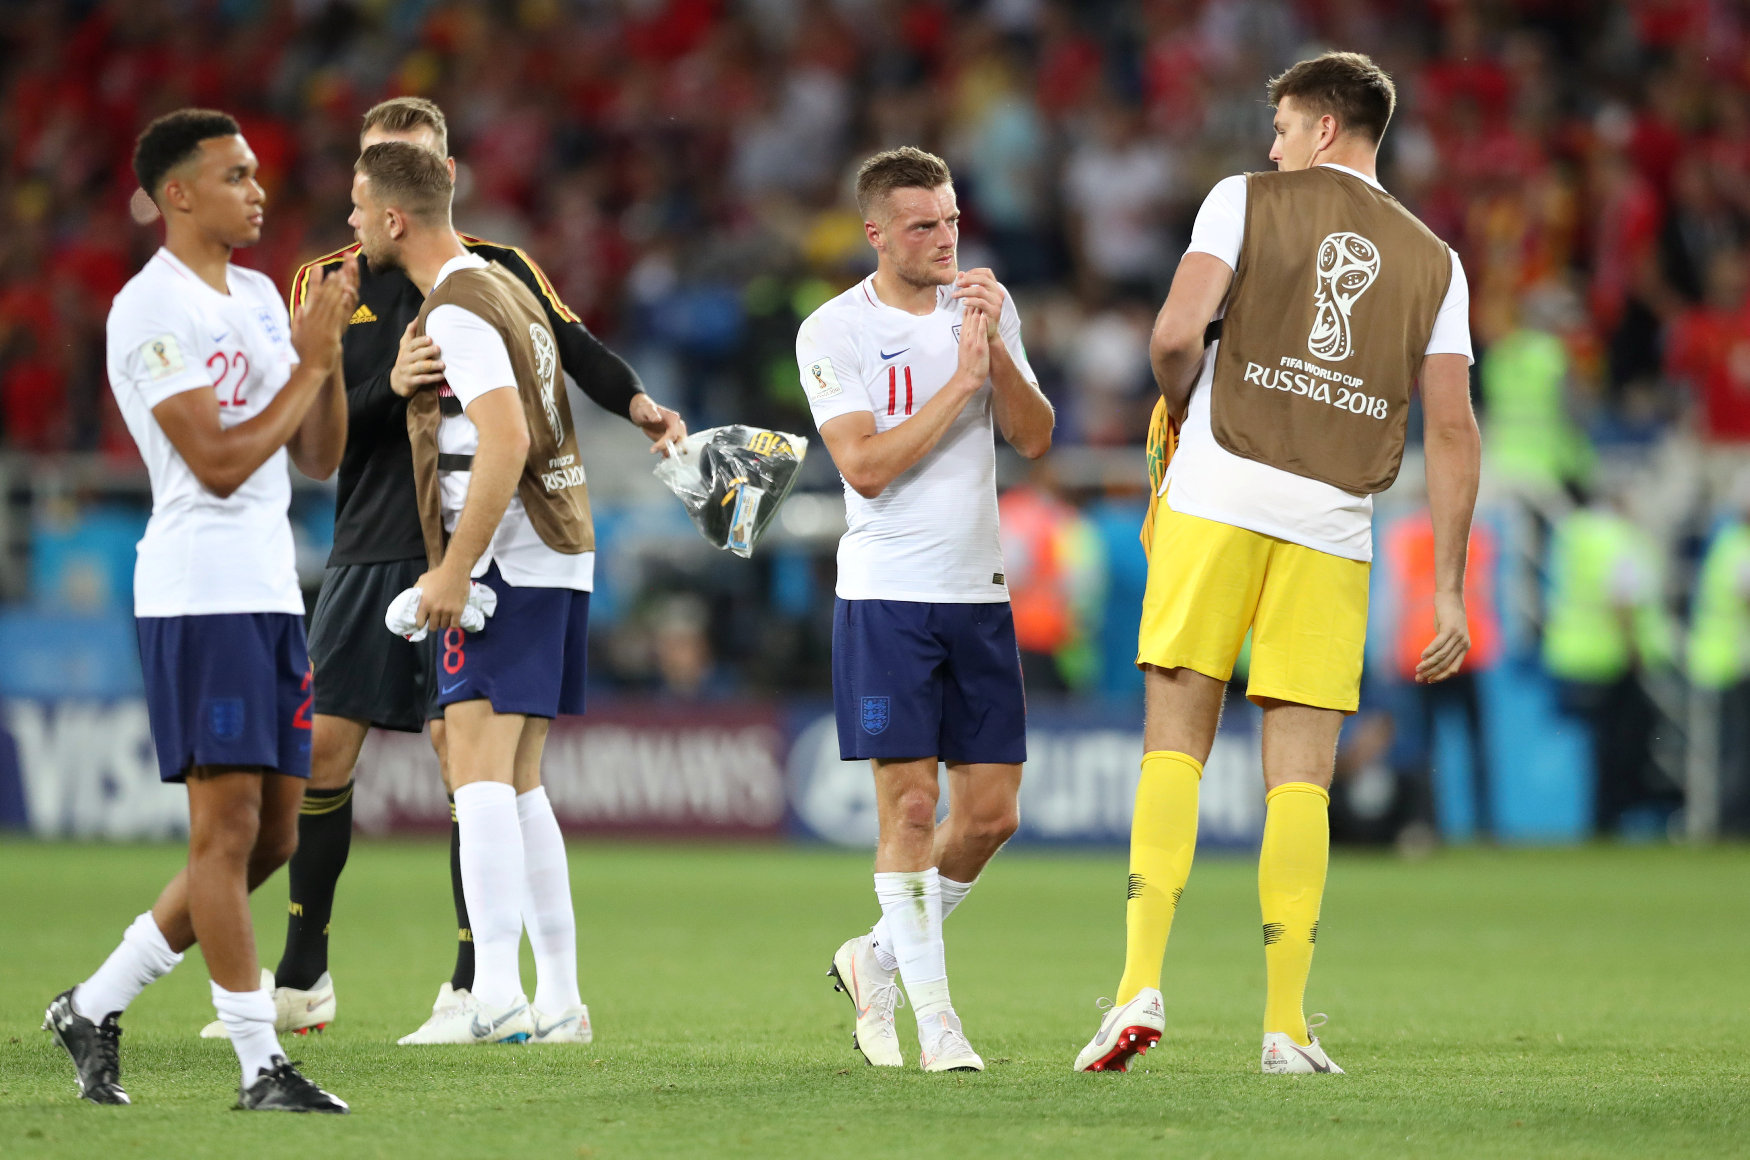 2018-06-28T200144Z_1553483384_RC1E2F168FC0_RTRMADP_3_SOCCER-WORLDCUP-ENG-BEL